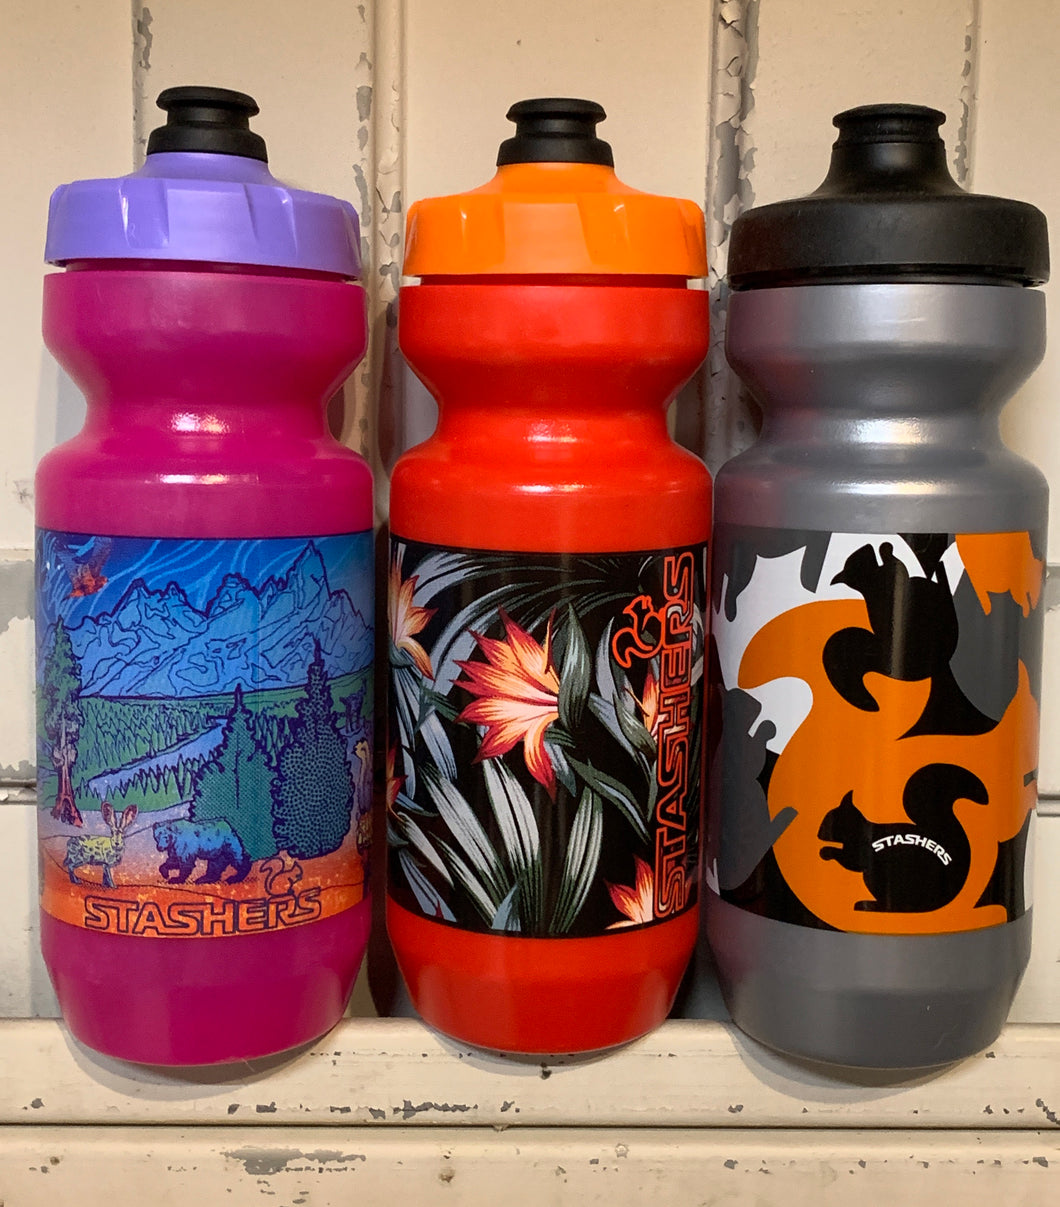 STASHERS Purist Water Bottles